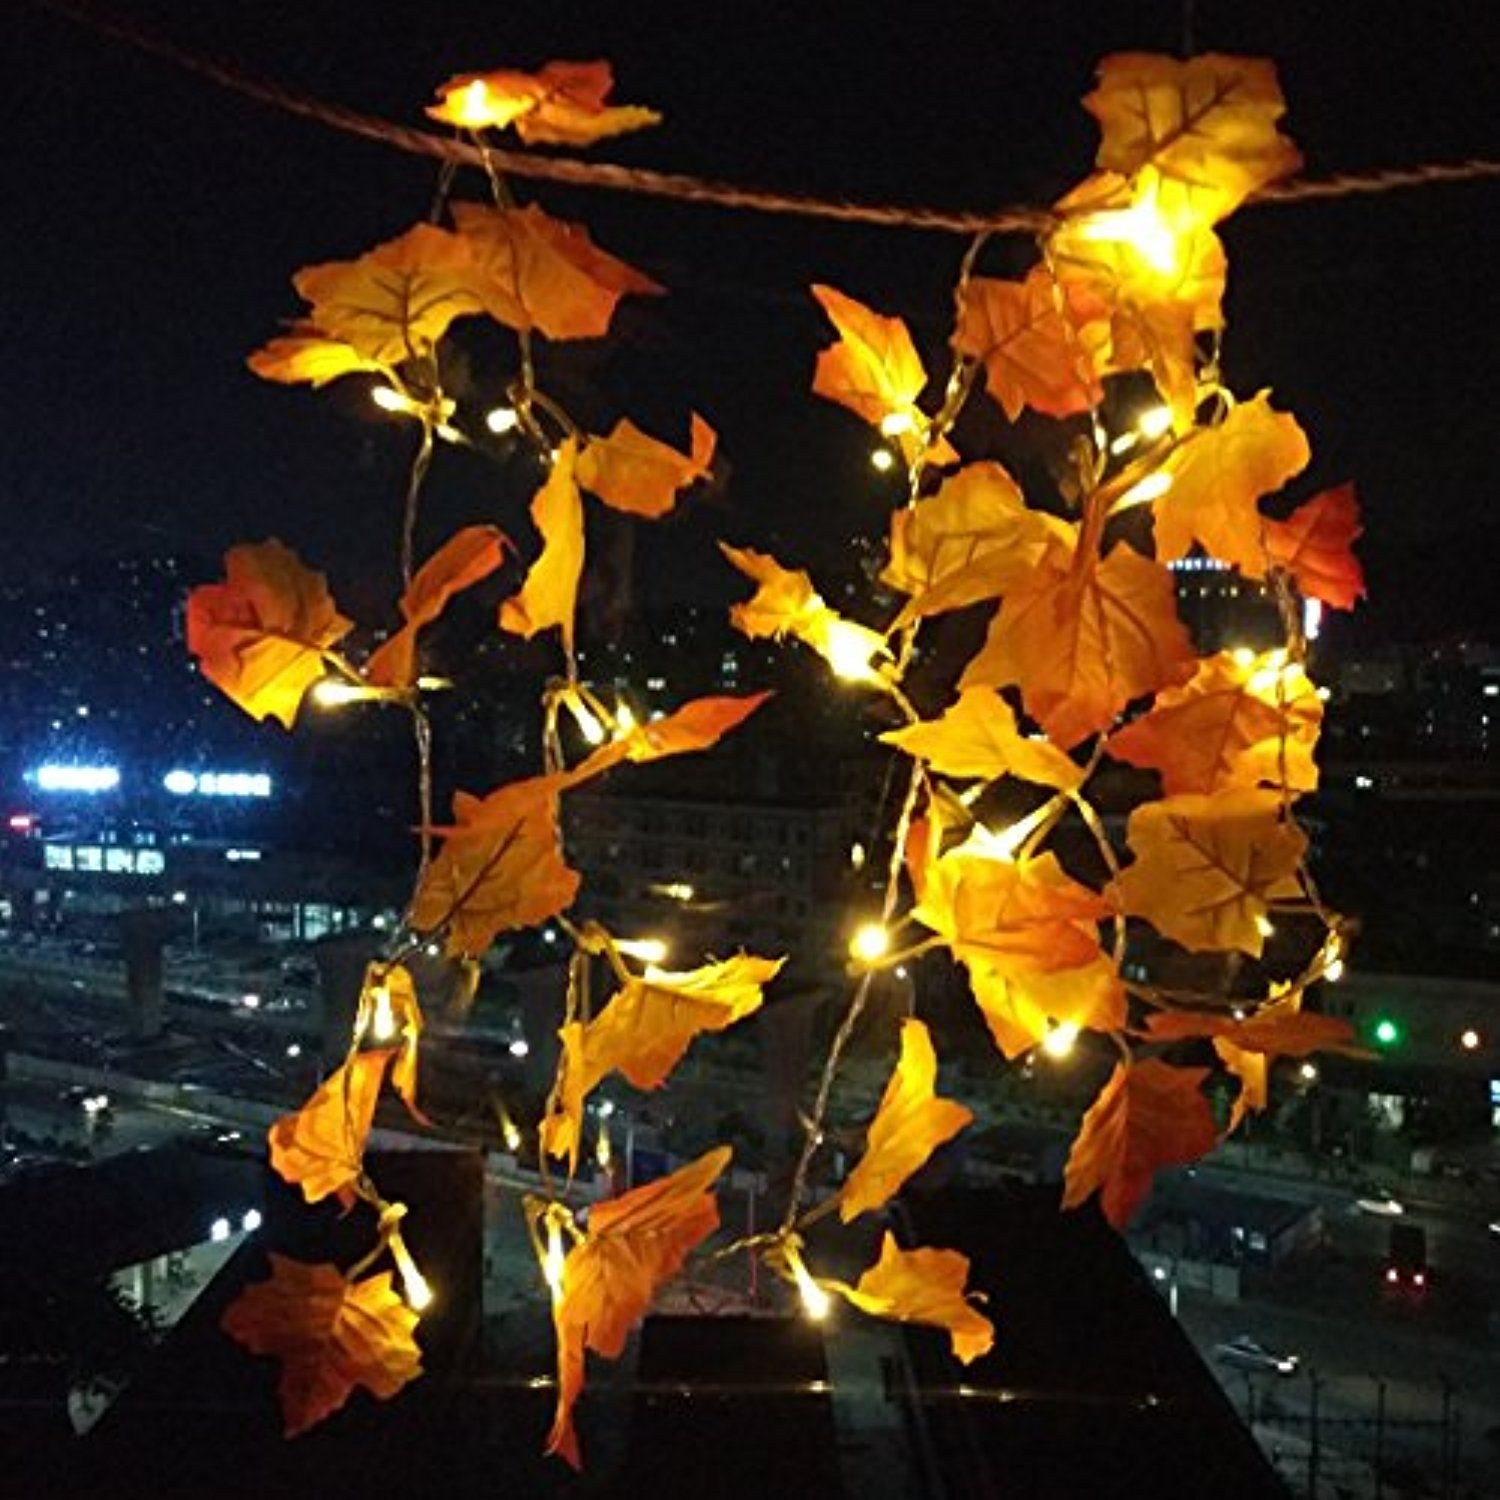 Maple Leaves Led Garland Lighted For Thanksgiving Christmas Festival Decorations Fall String Lights 8 2 Feet With 20 Warm White Bulbs See